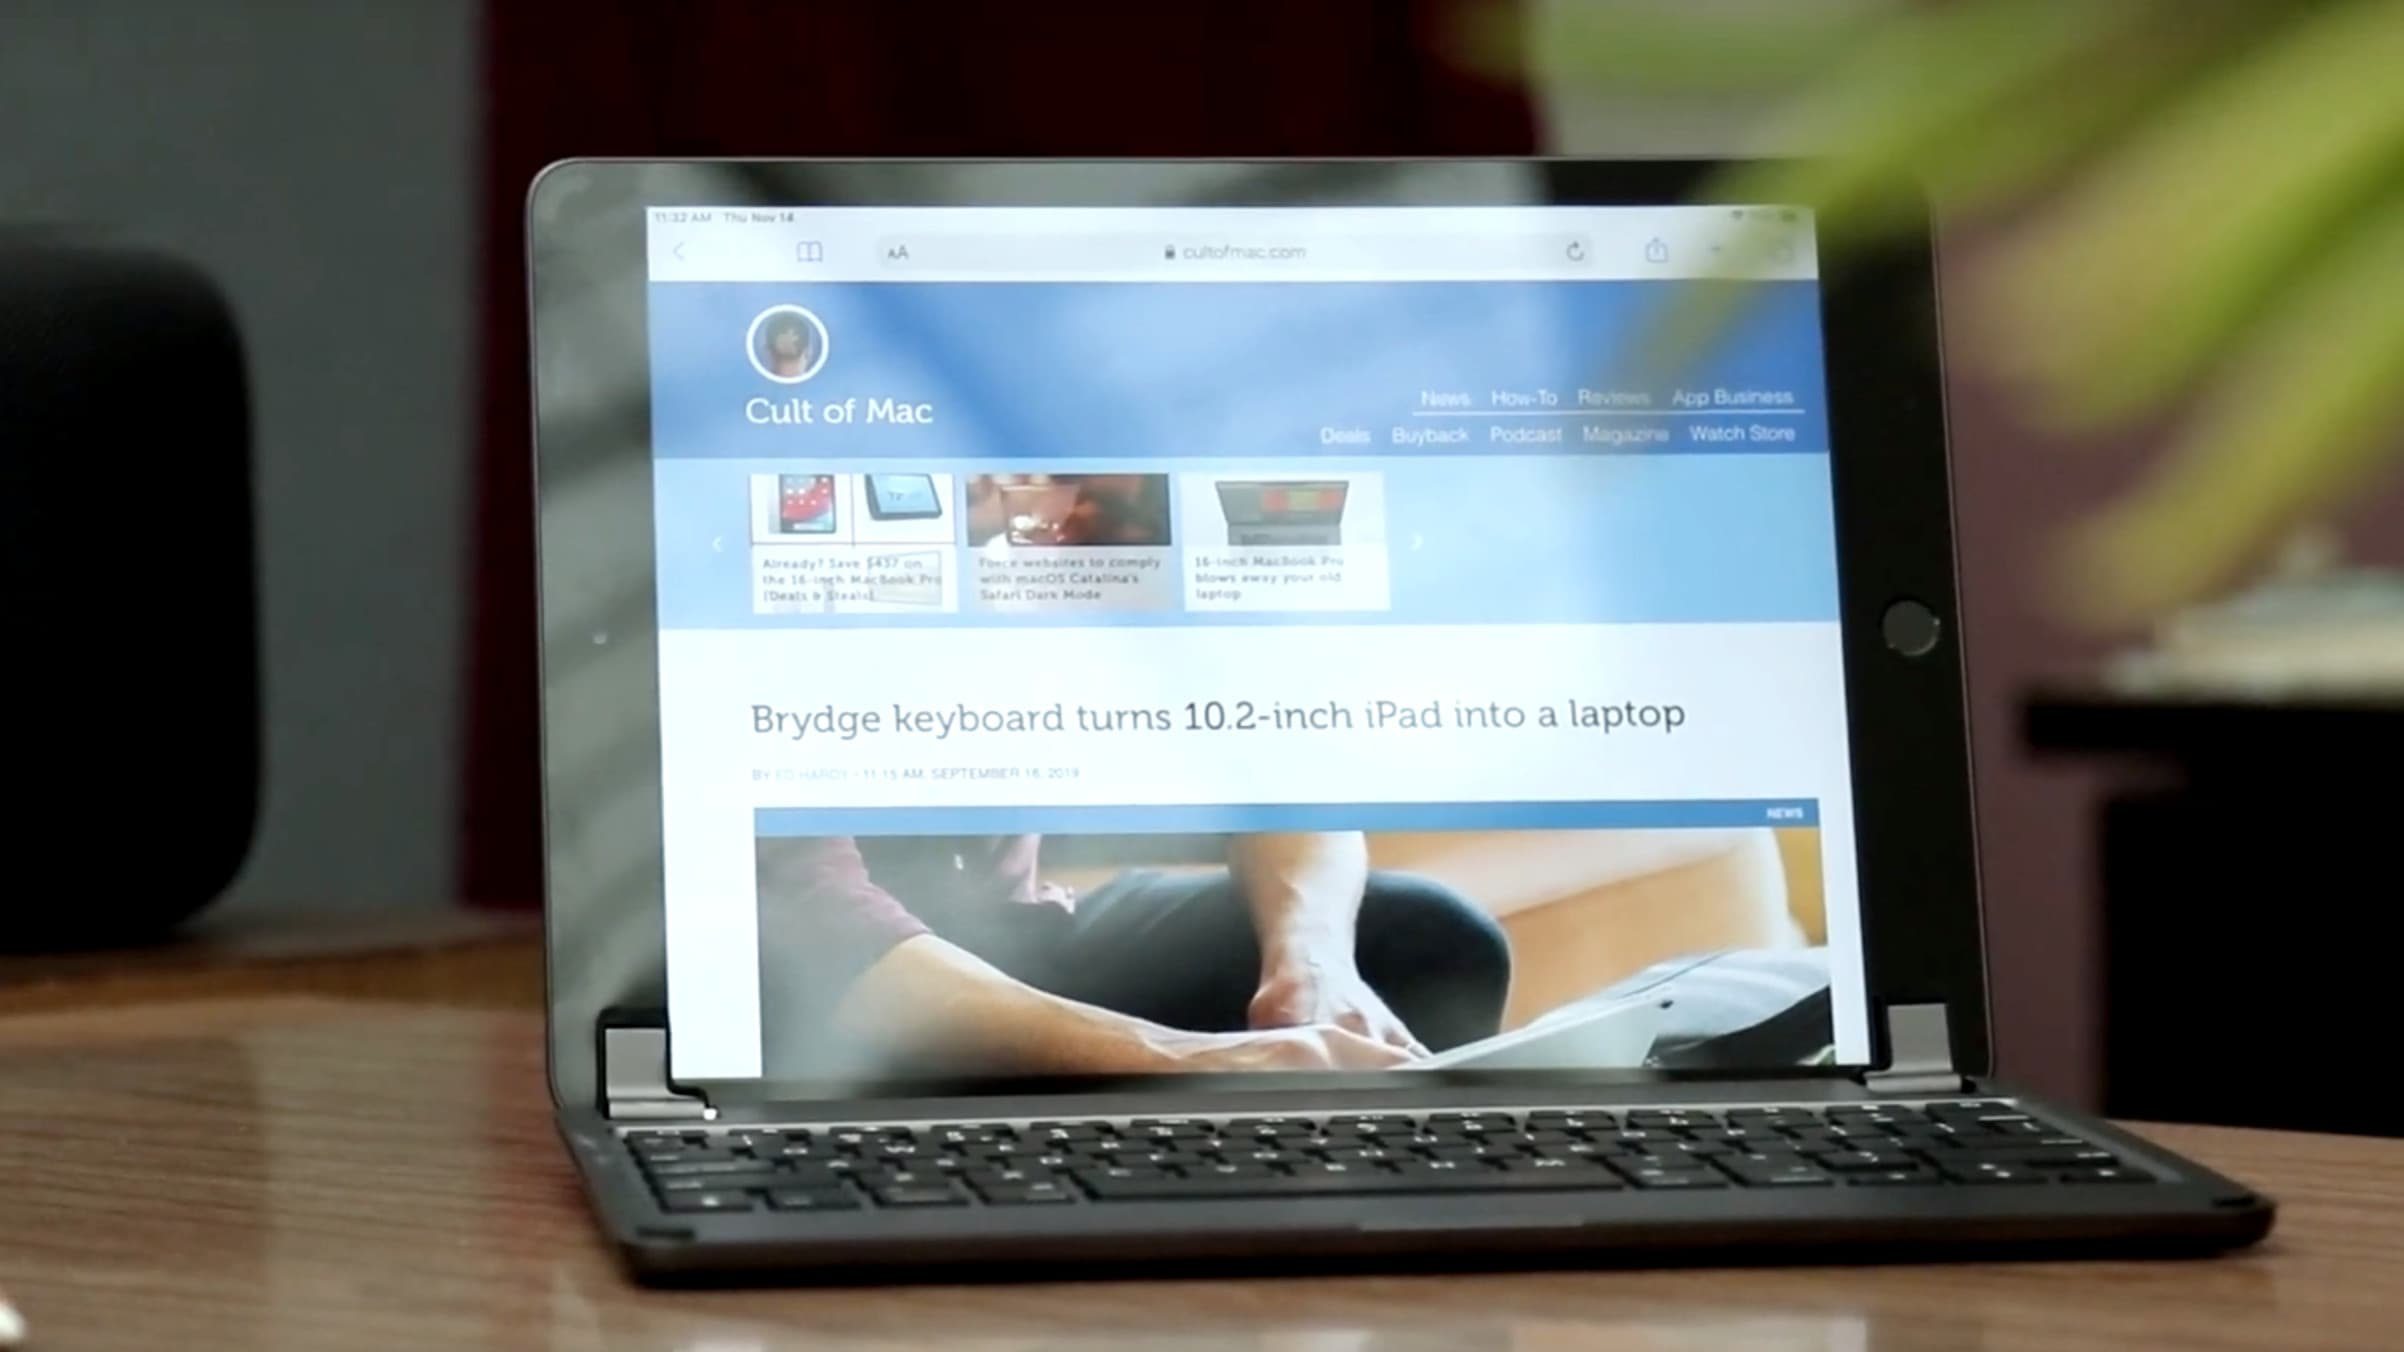 The Brydge Keyboard on the 10.2 iPad